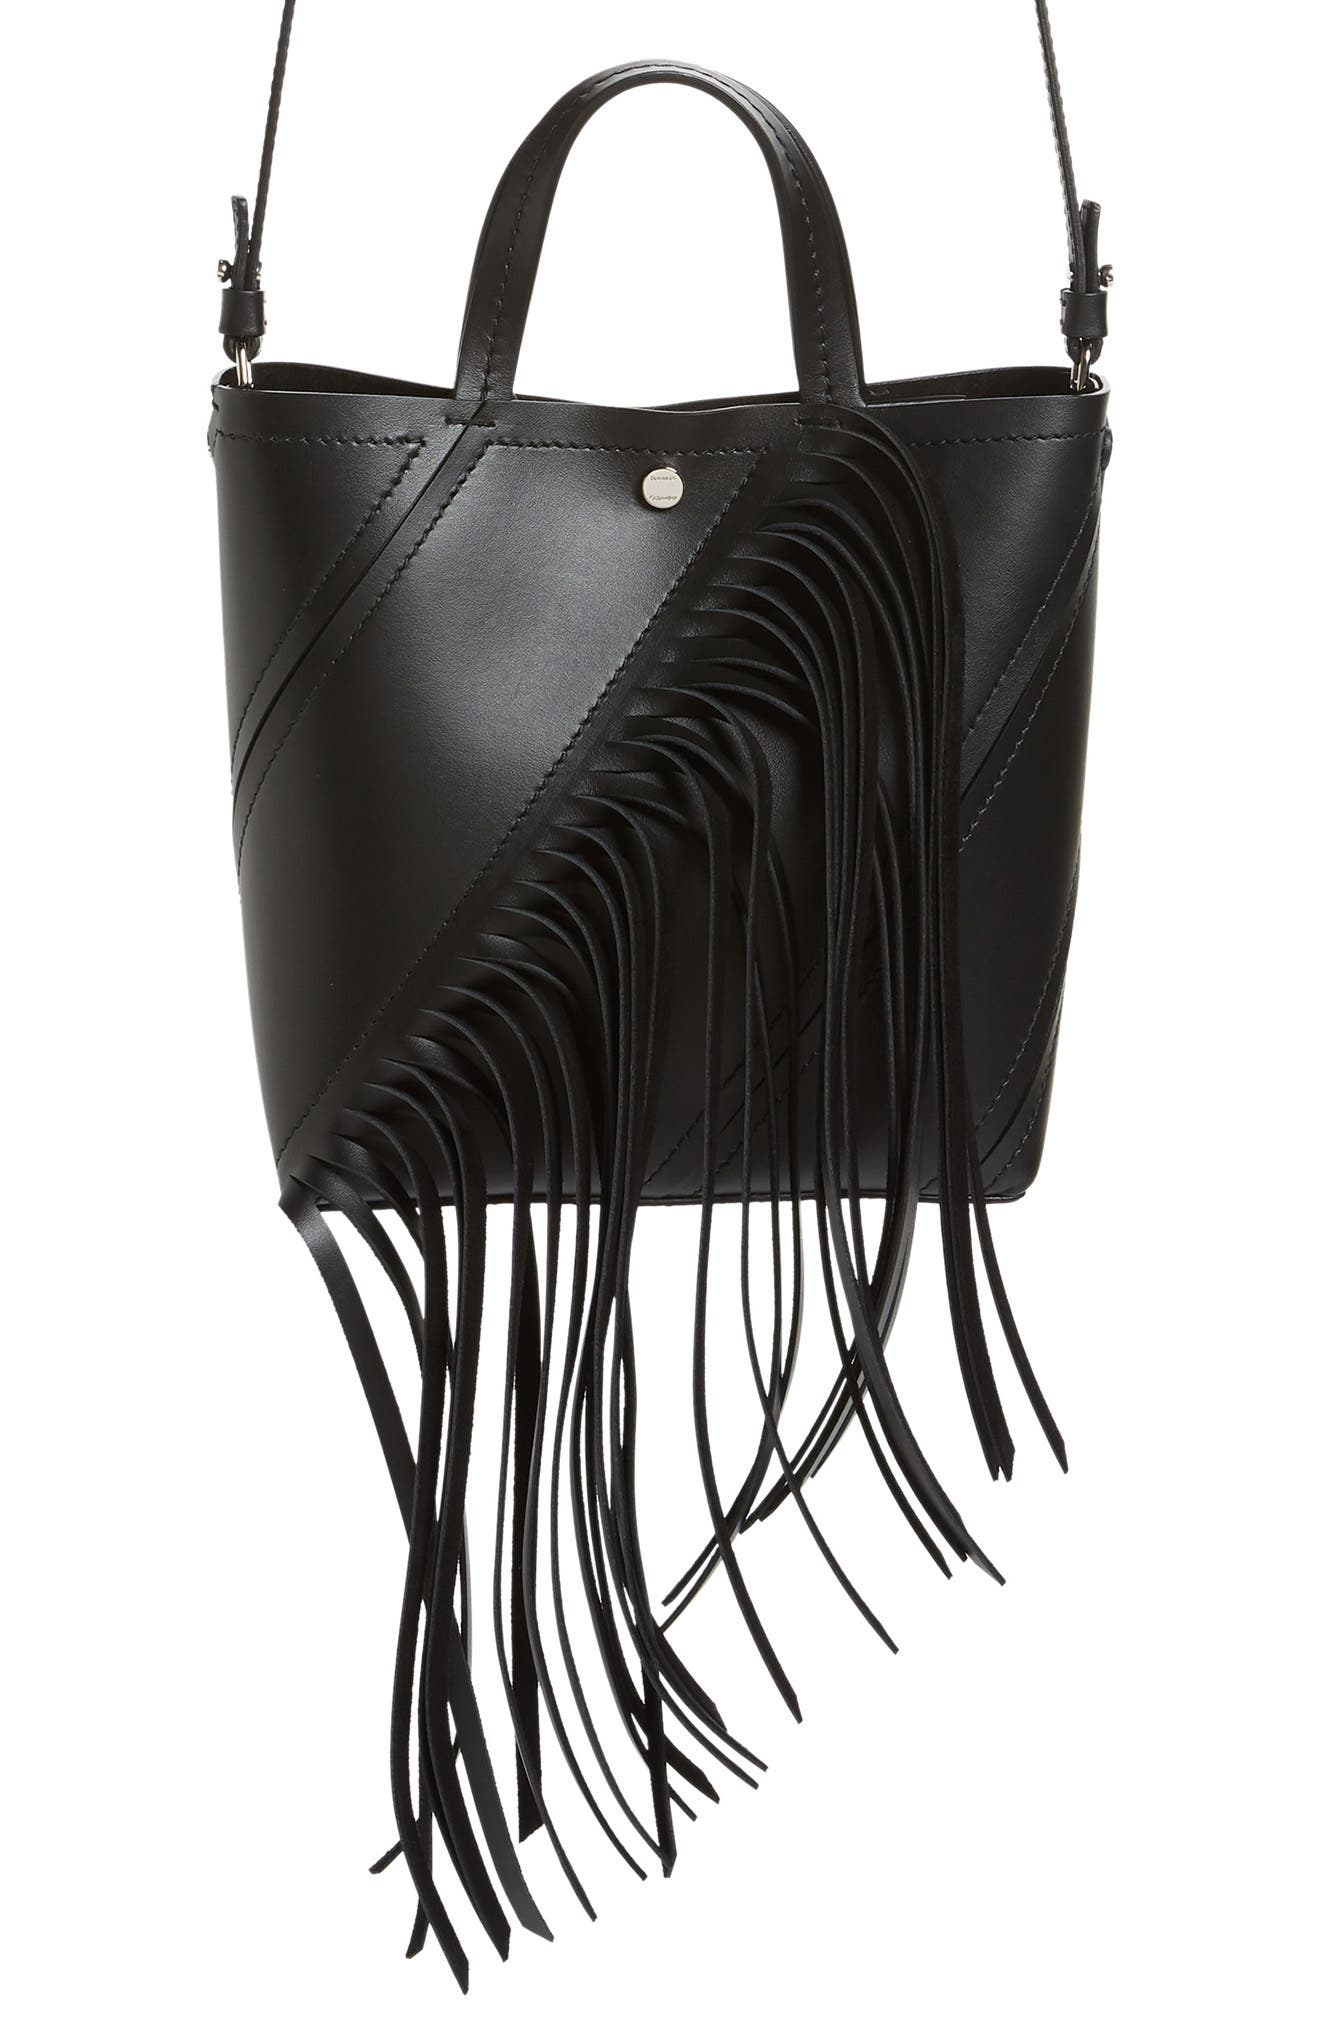 PROENZA SCHOULER Proenza Schoulder Small Hex Calfskin Leather Tote, Main, color, BLACK/ BLACK